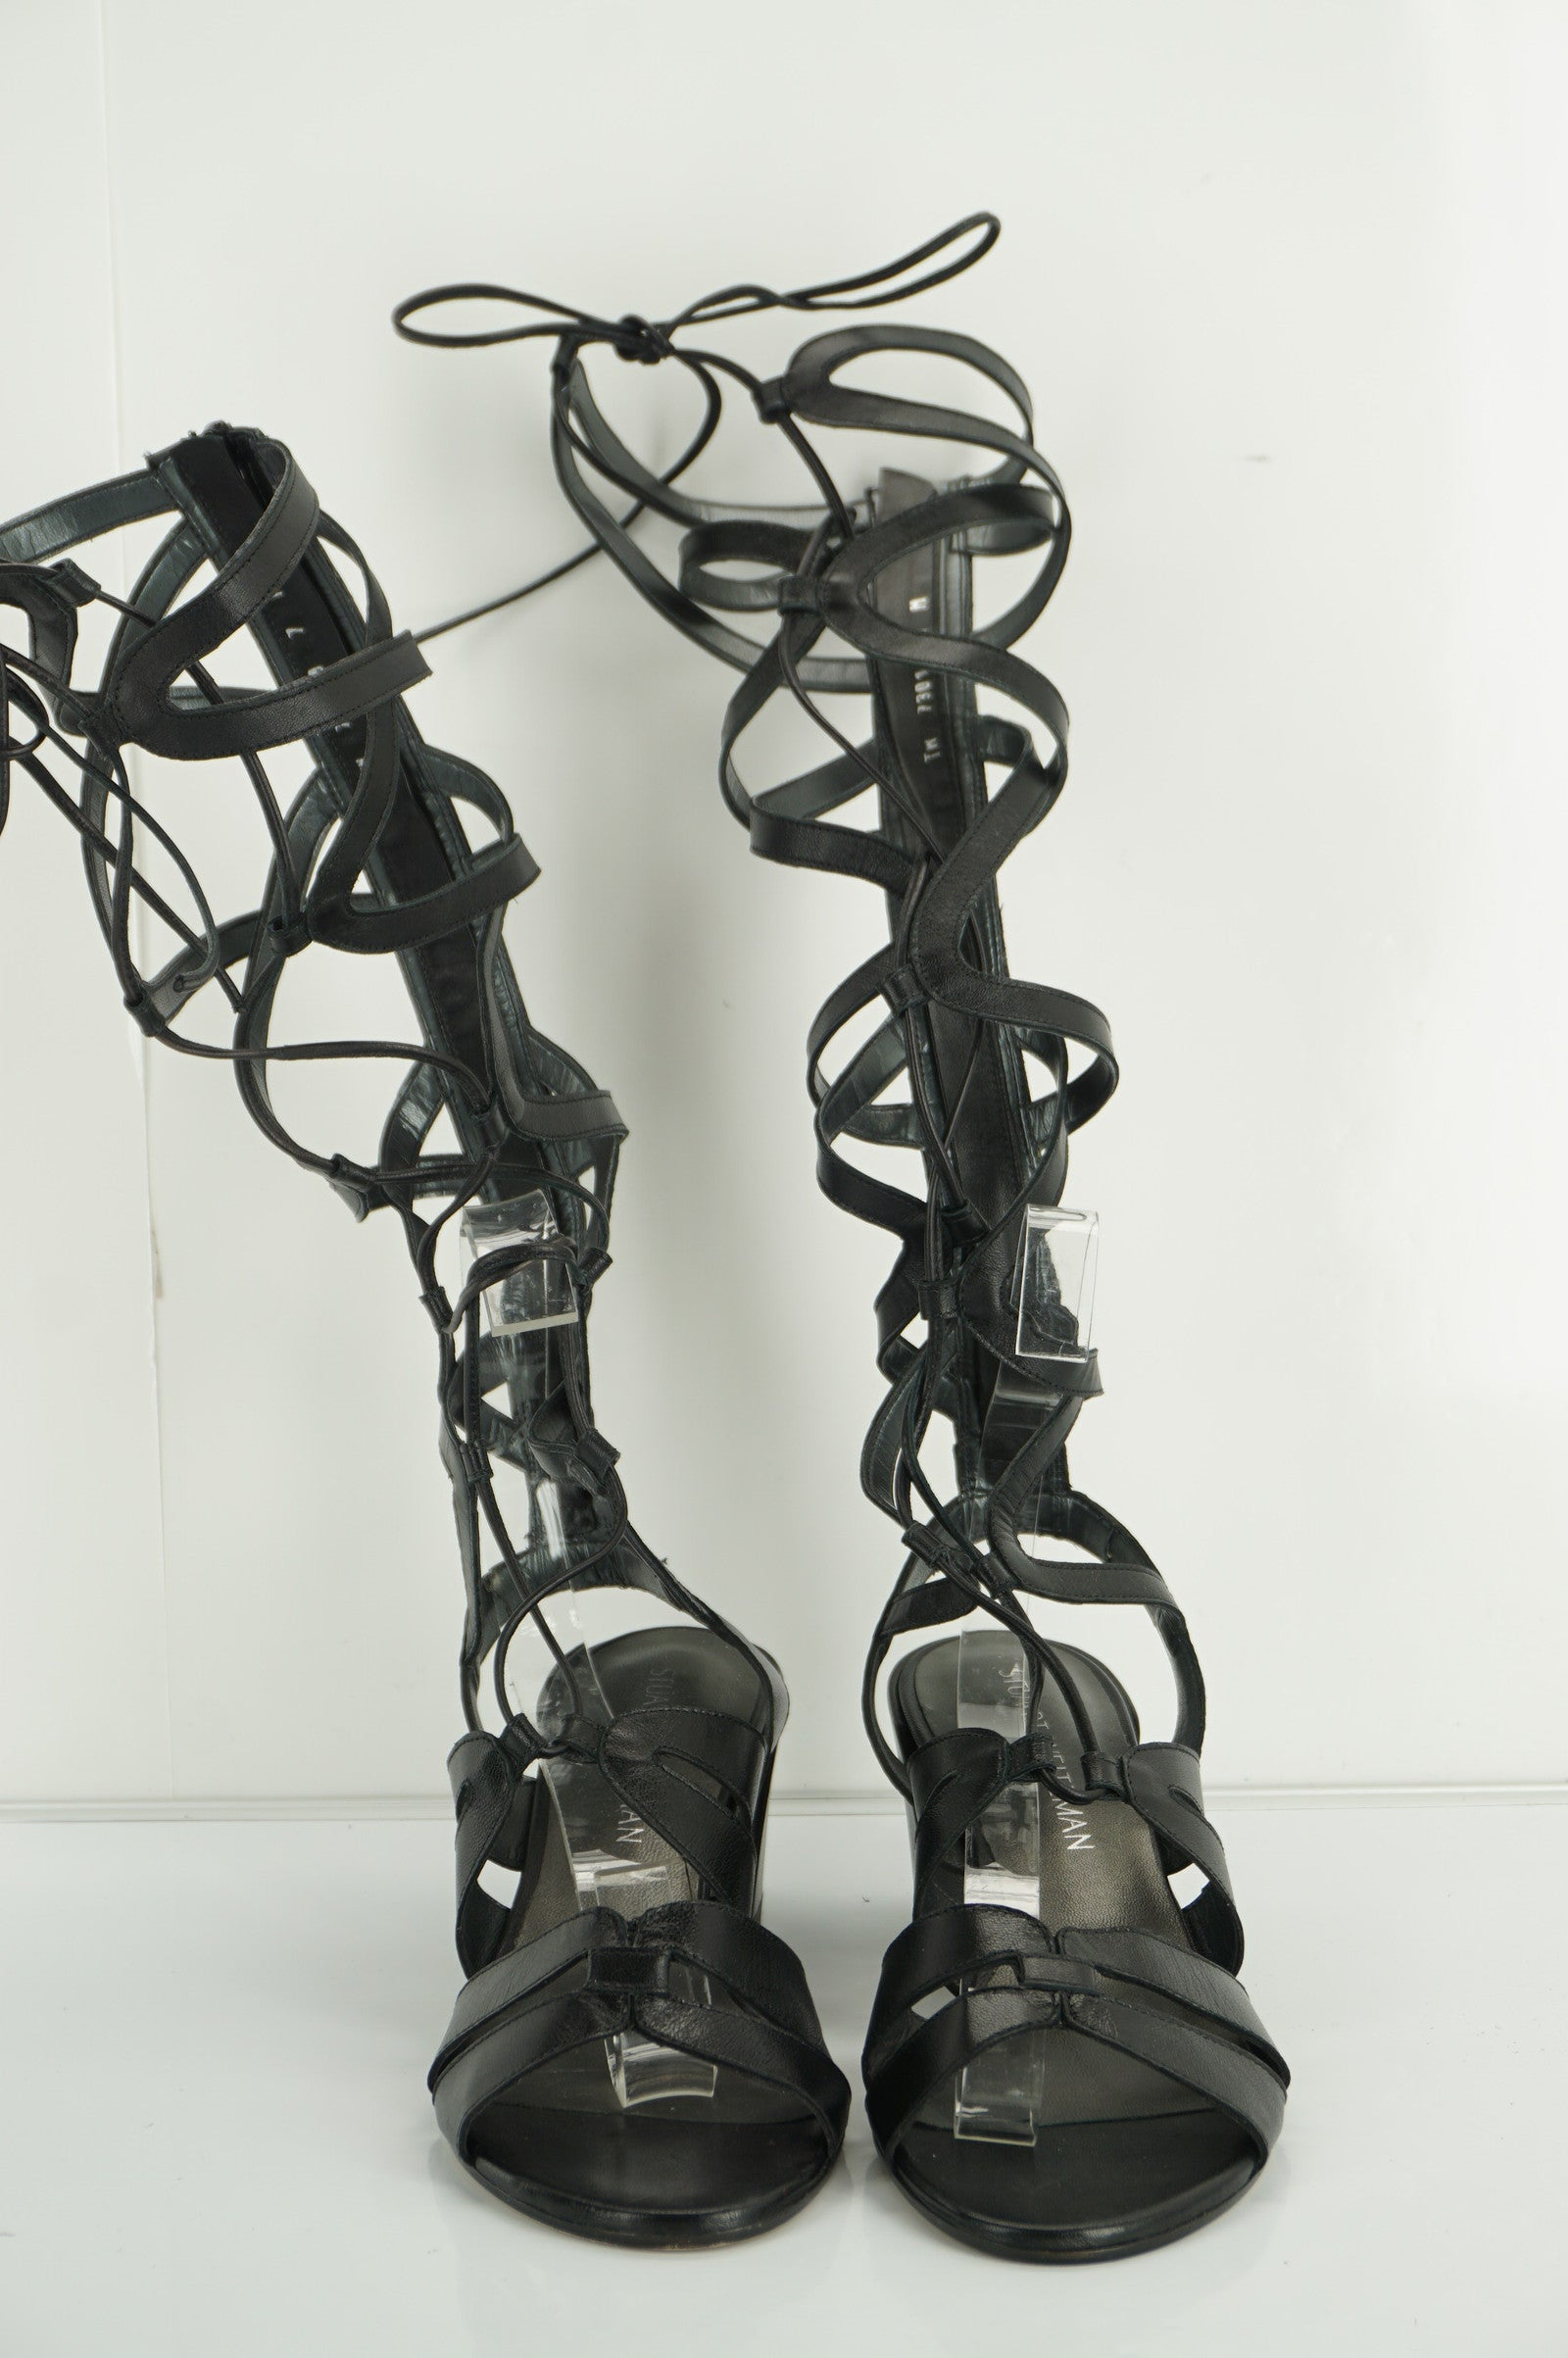 Stuart Weitzman Black Grecian Gladiator Sandals SZ 7 Strappy Knee High $300 New